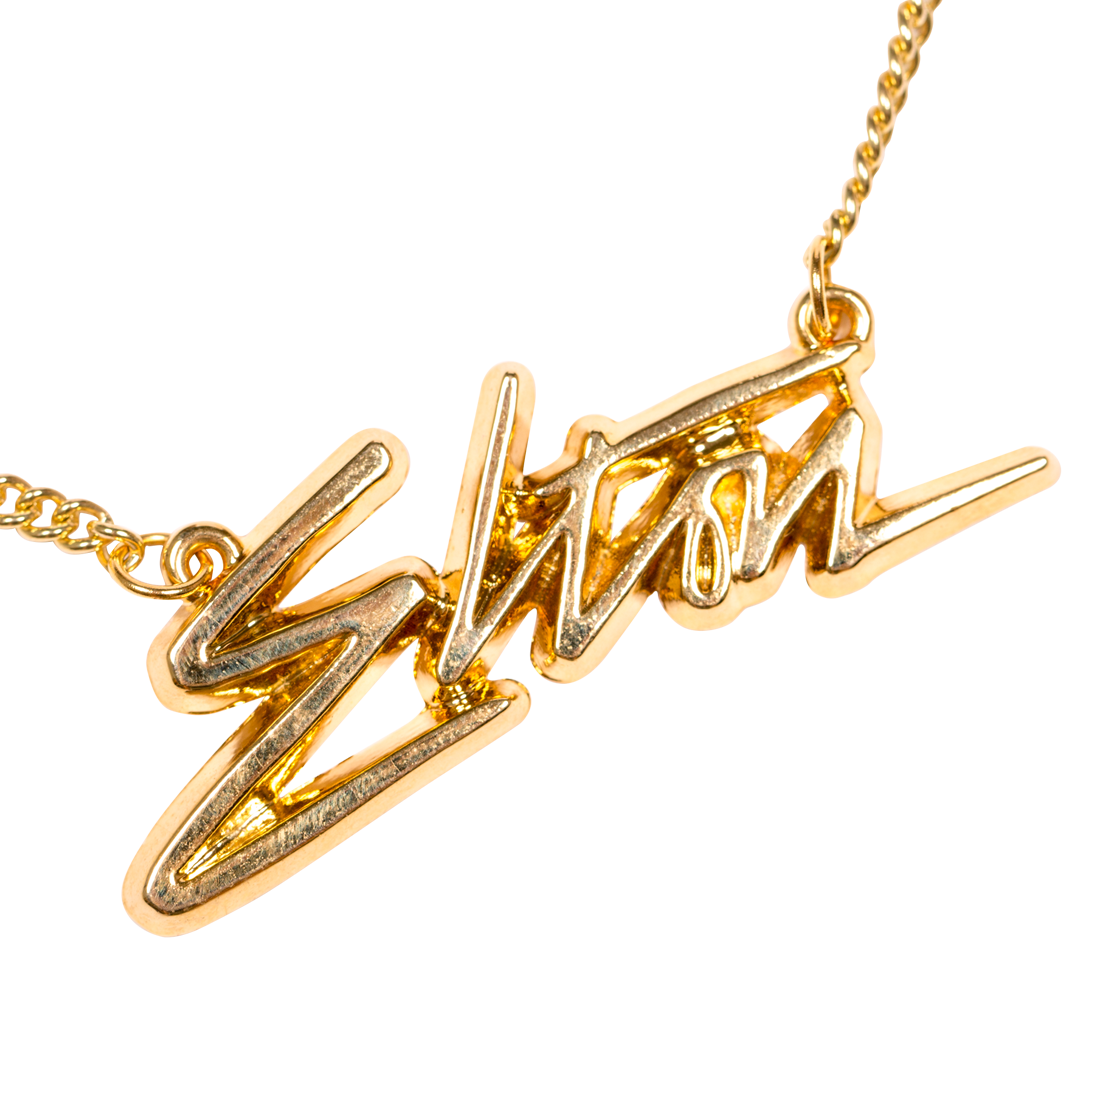 Elton John: Flash Logo Necklace